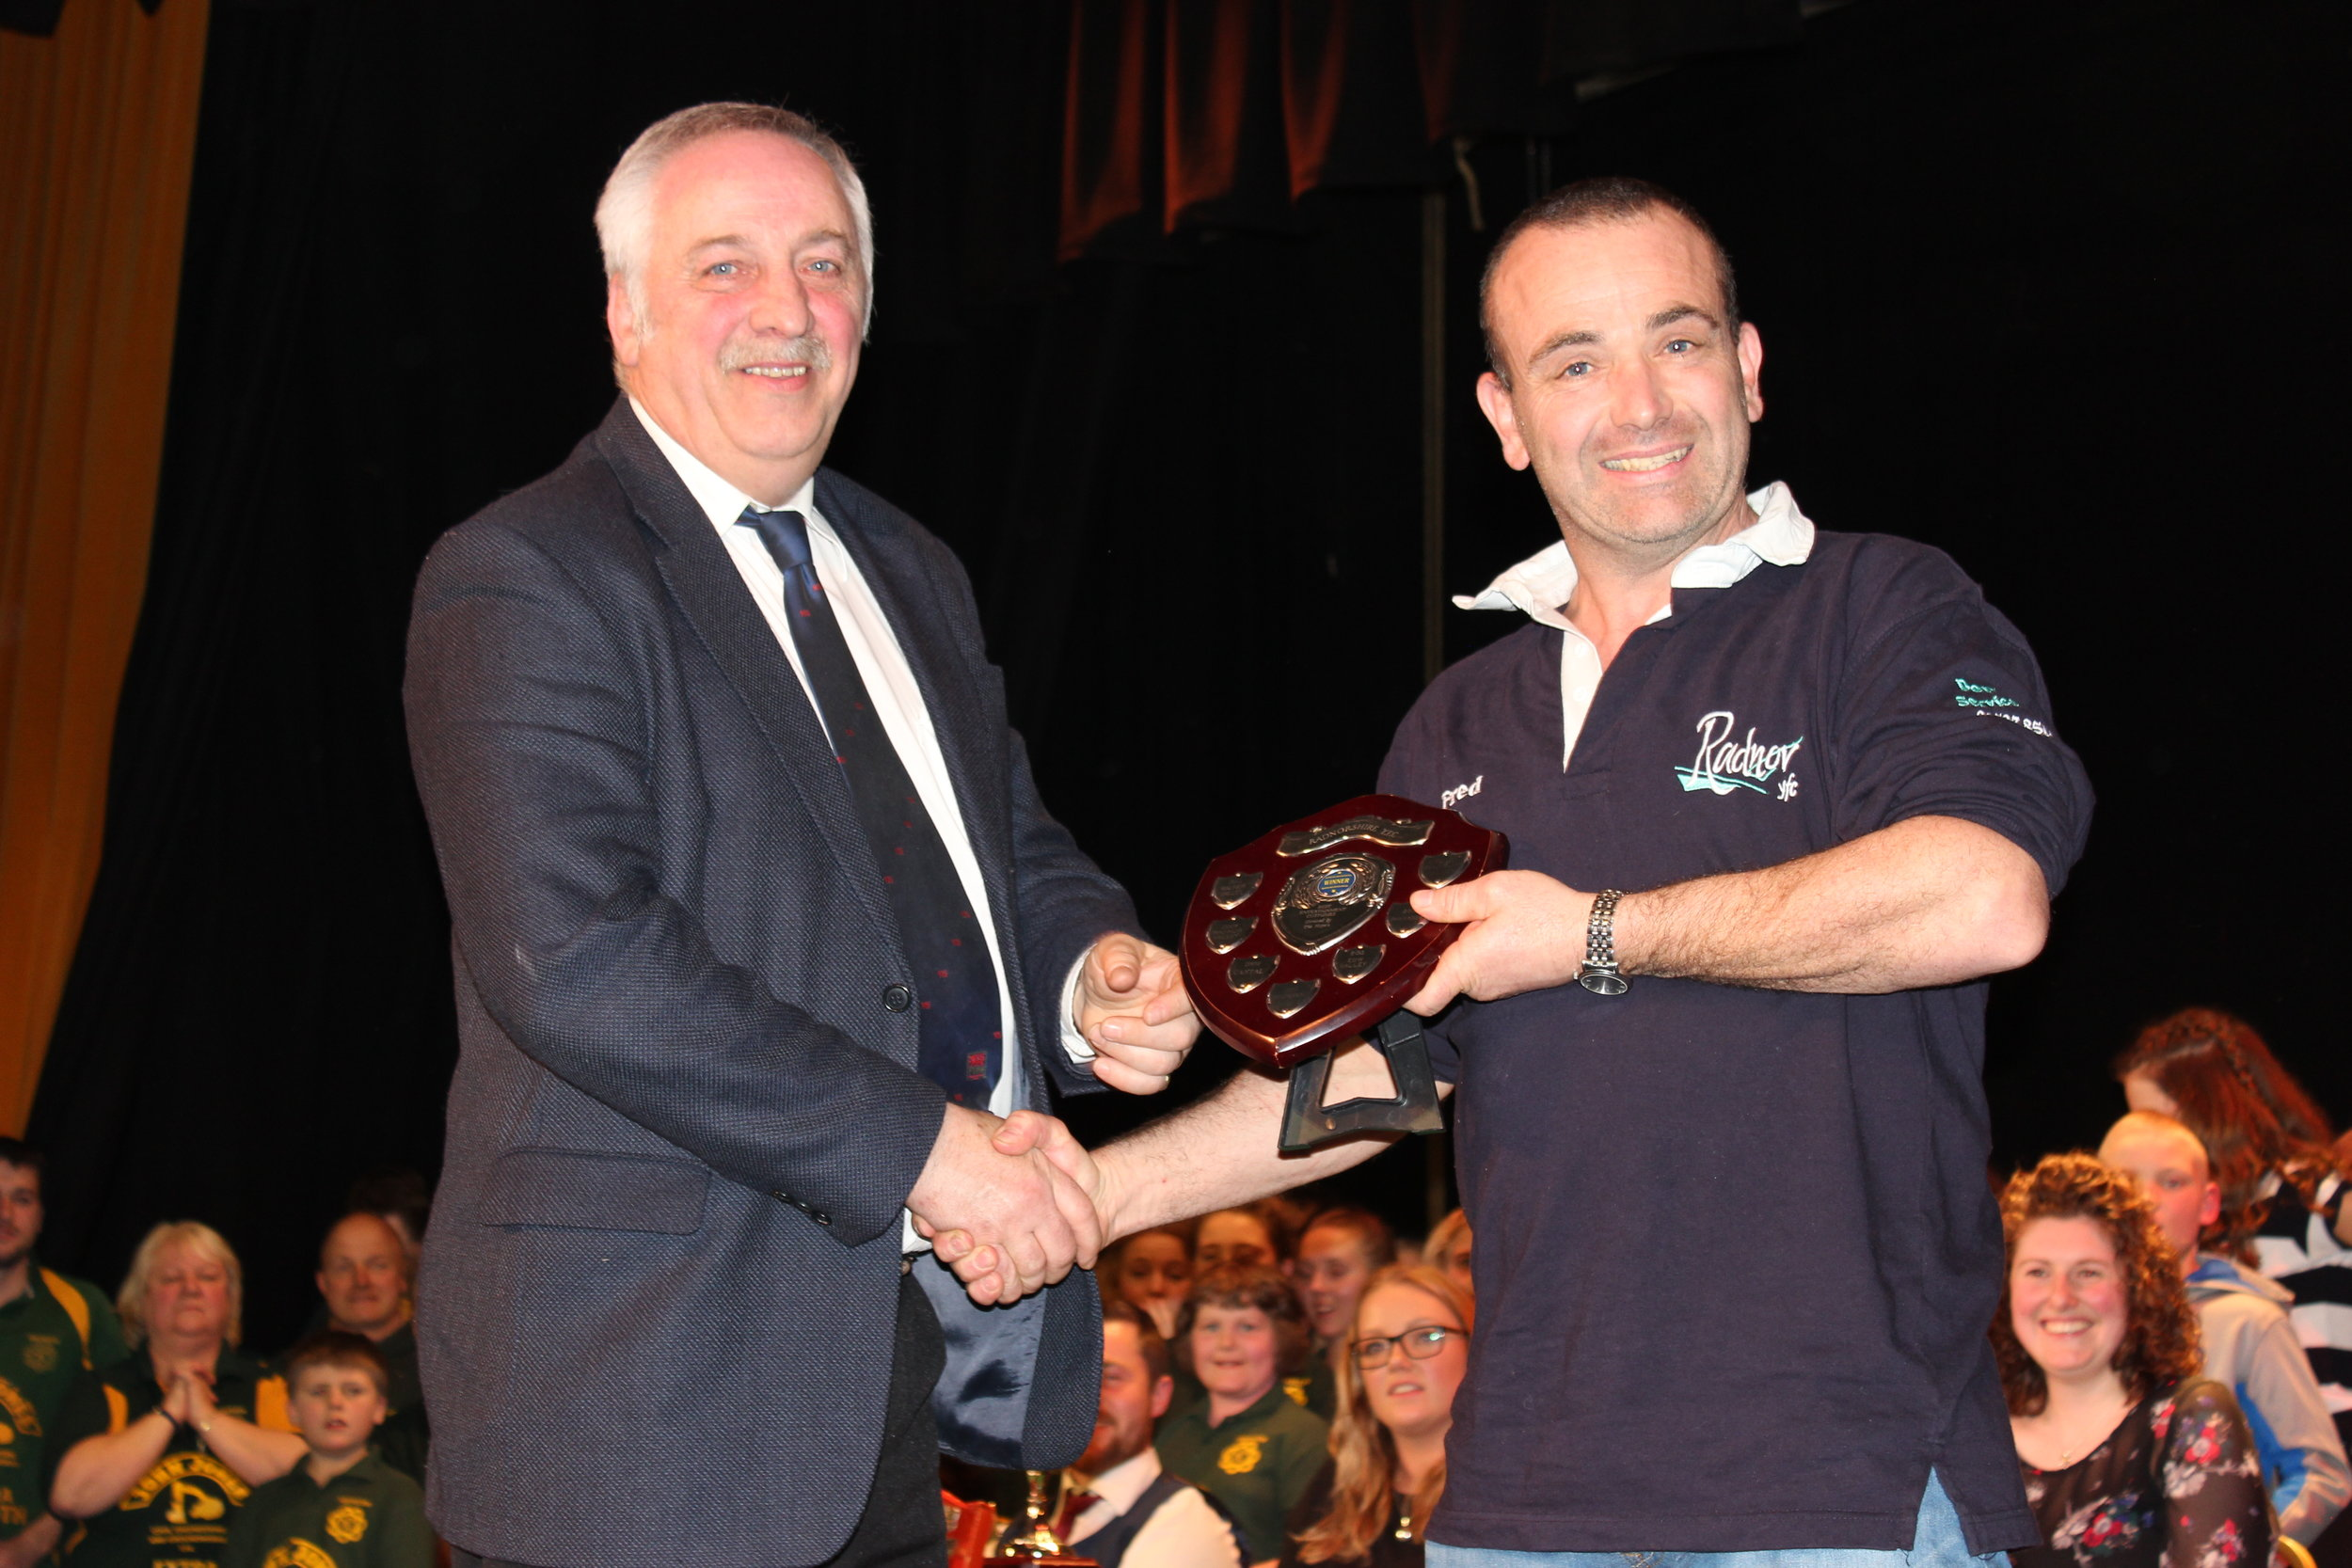 Fred Morris, Penybont YFC being presented the 'Hope Family Shield' for best costume by David Powell, FUW